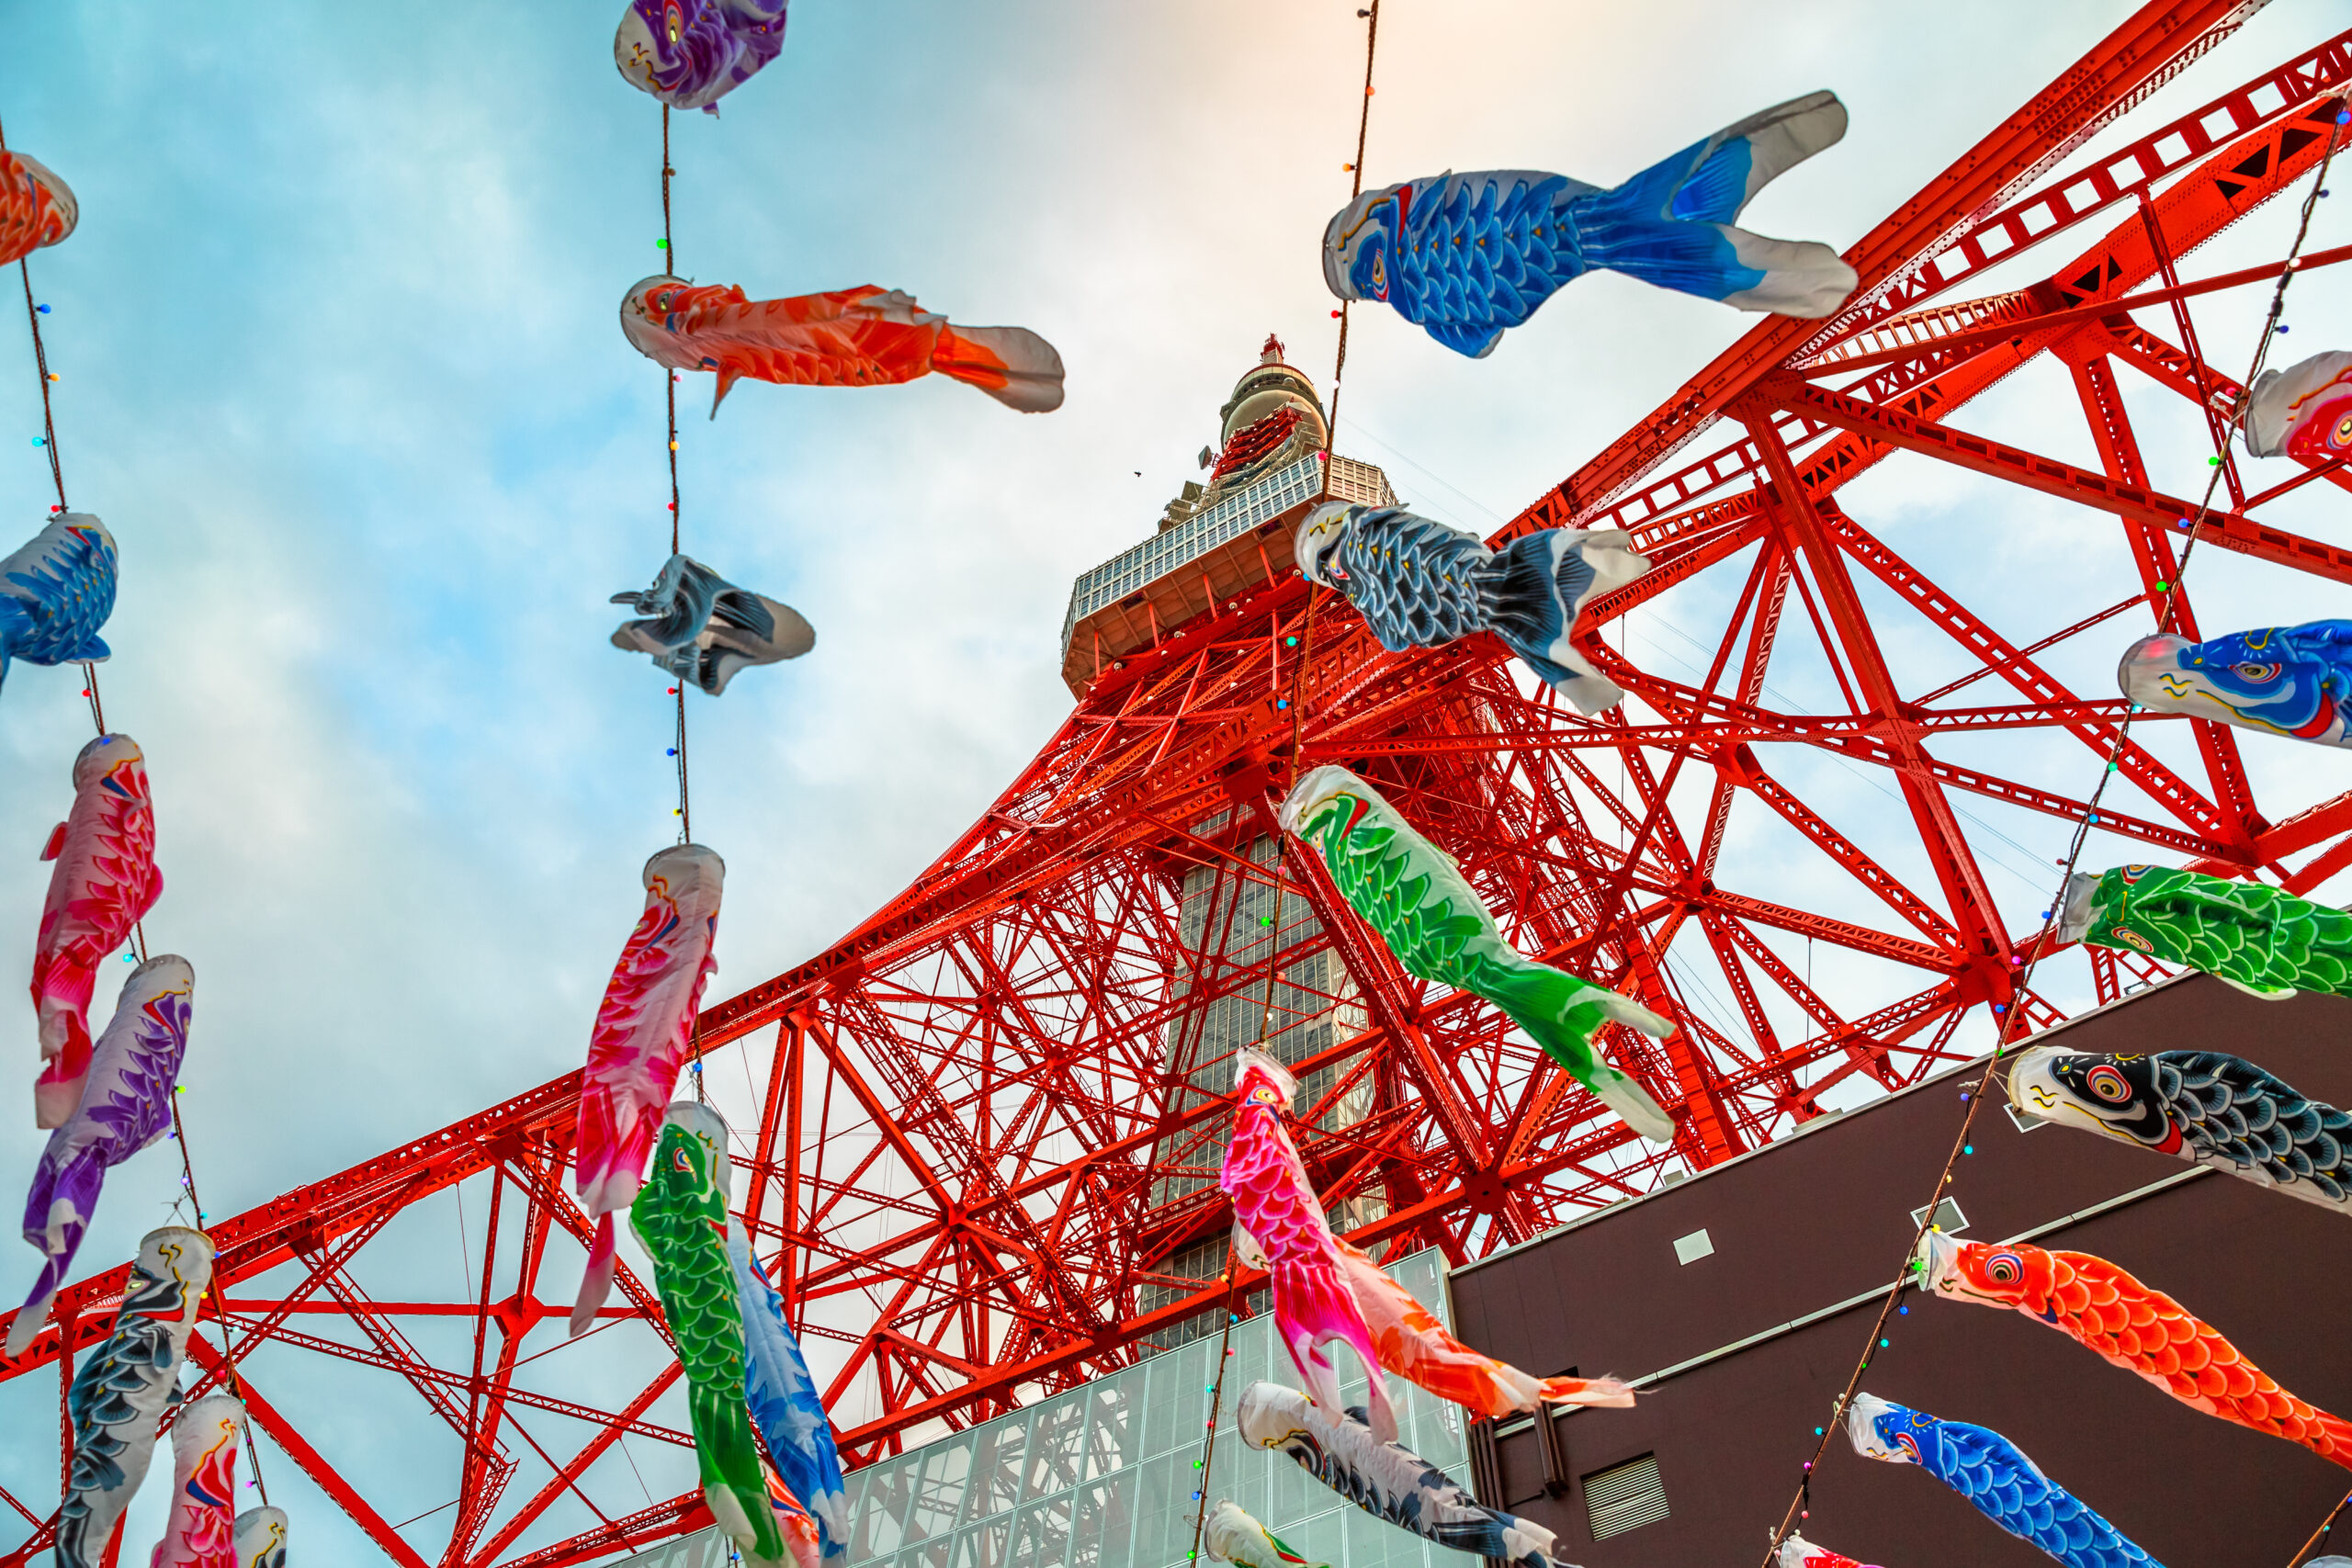 View of colorful Koinobori at Tokyo Tower. Koinobori are carp-shaped wind socks traditionally flown in Japan to celebrate Children's Day during the Golden Week.